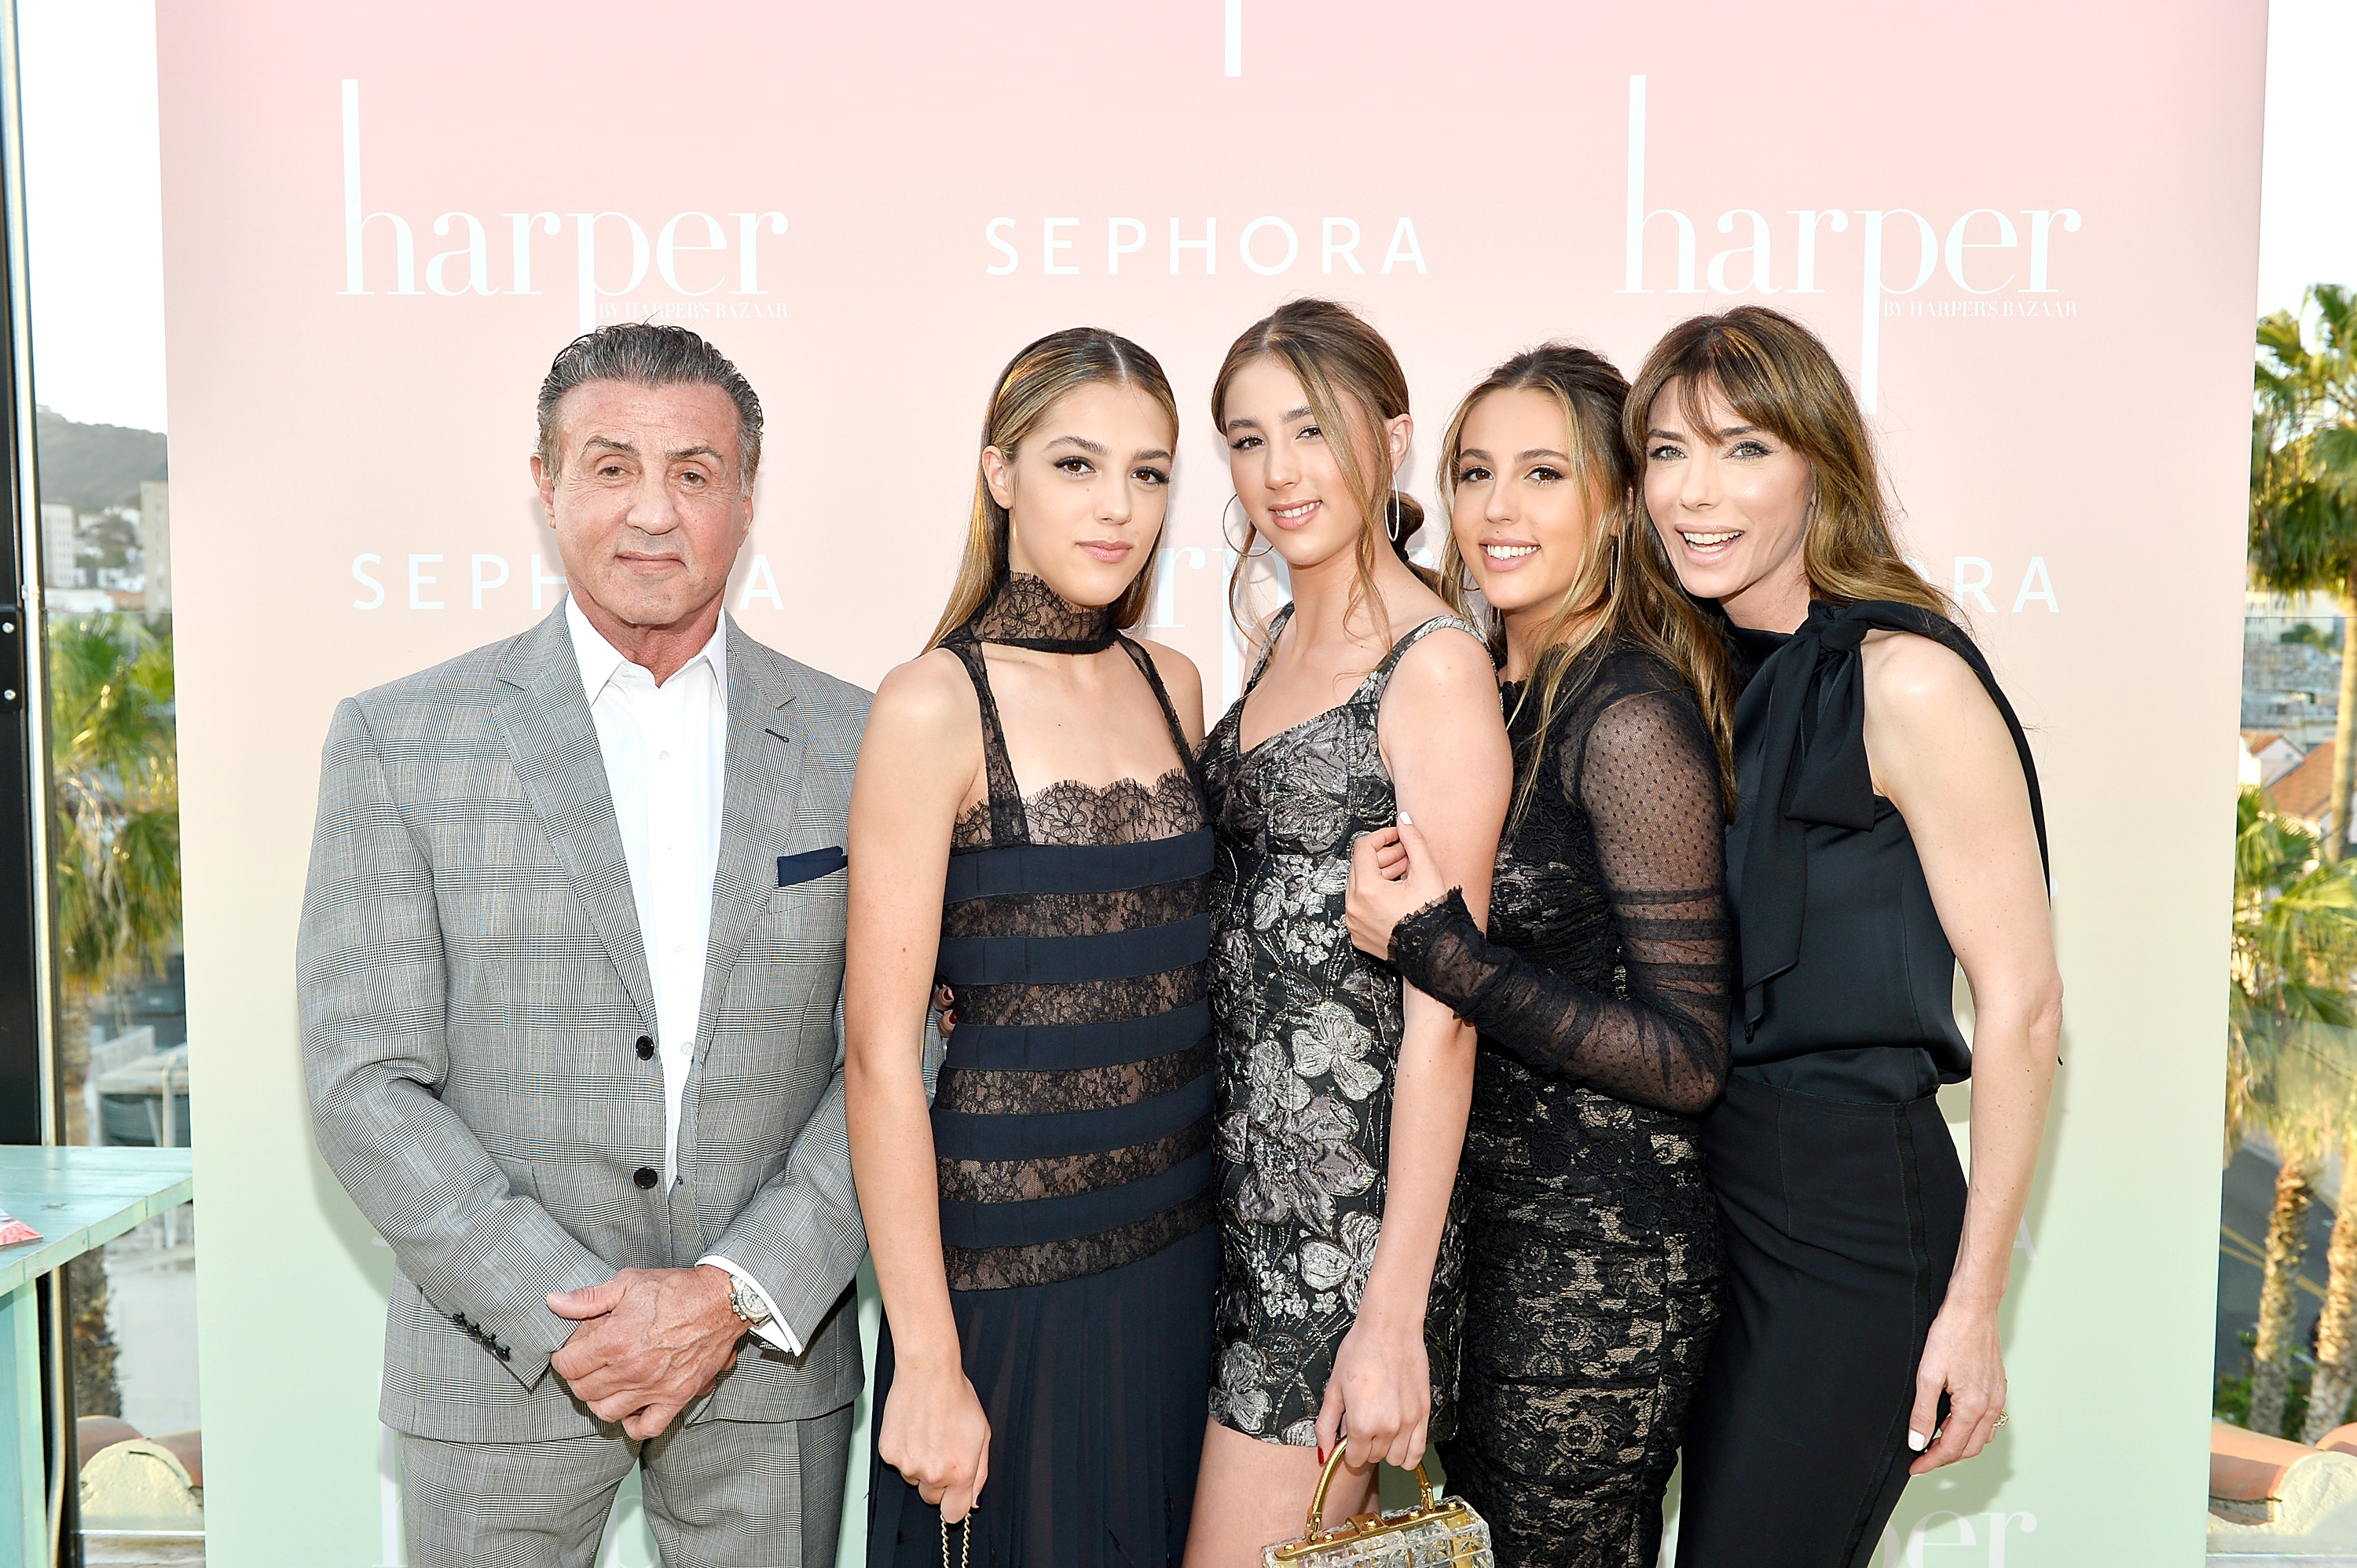 Sylvester Stallone; Sistine Stallone; Scarlet Stallone; Sophia Stallone and Jennifer Flavin Stallone